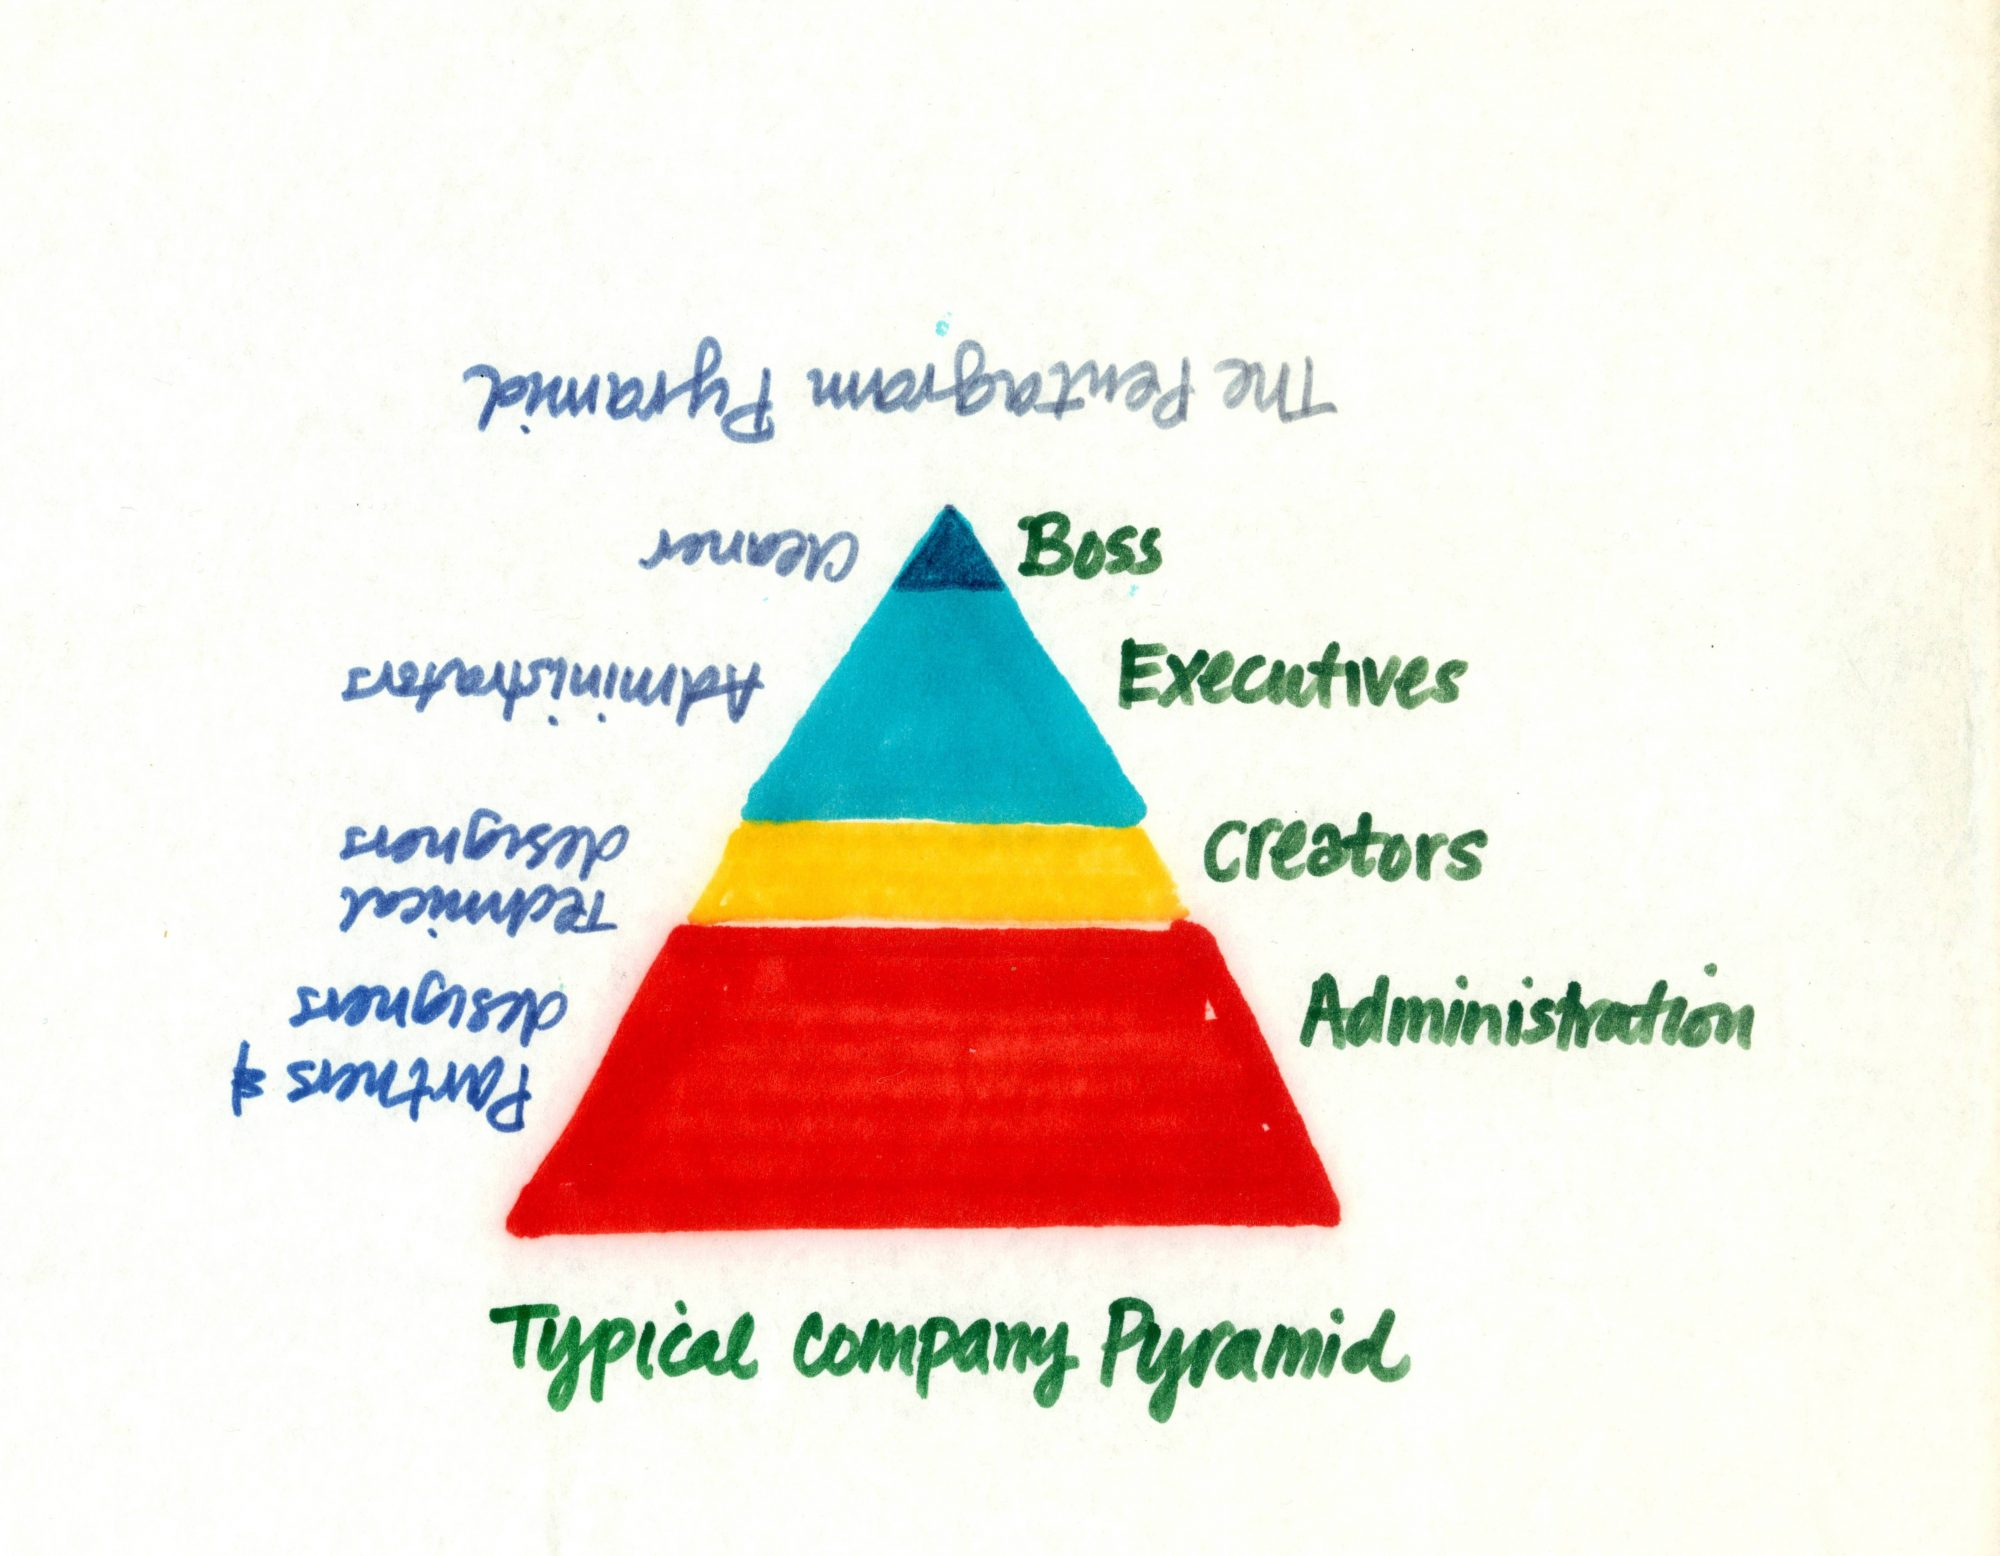 2. Typical company pyramid